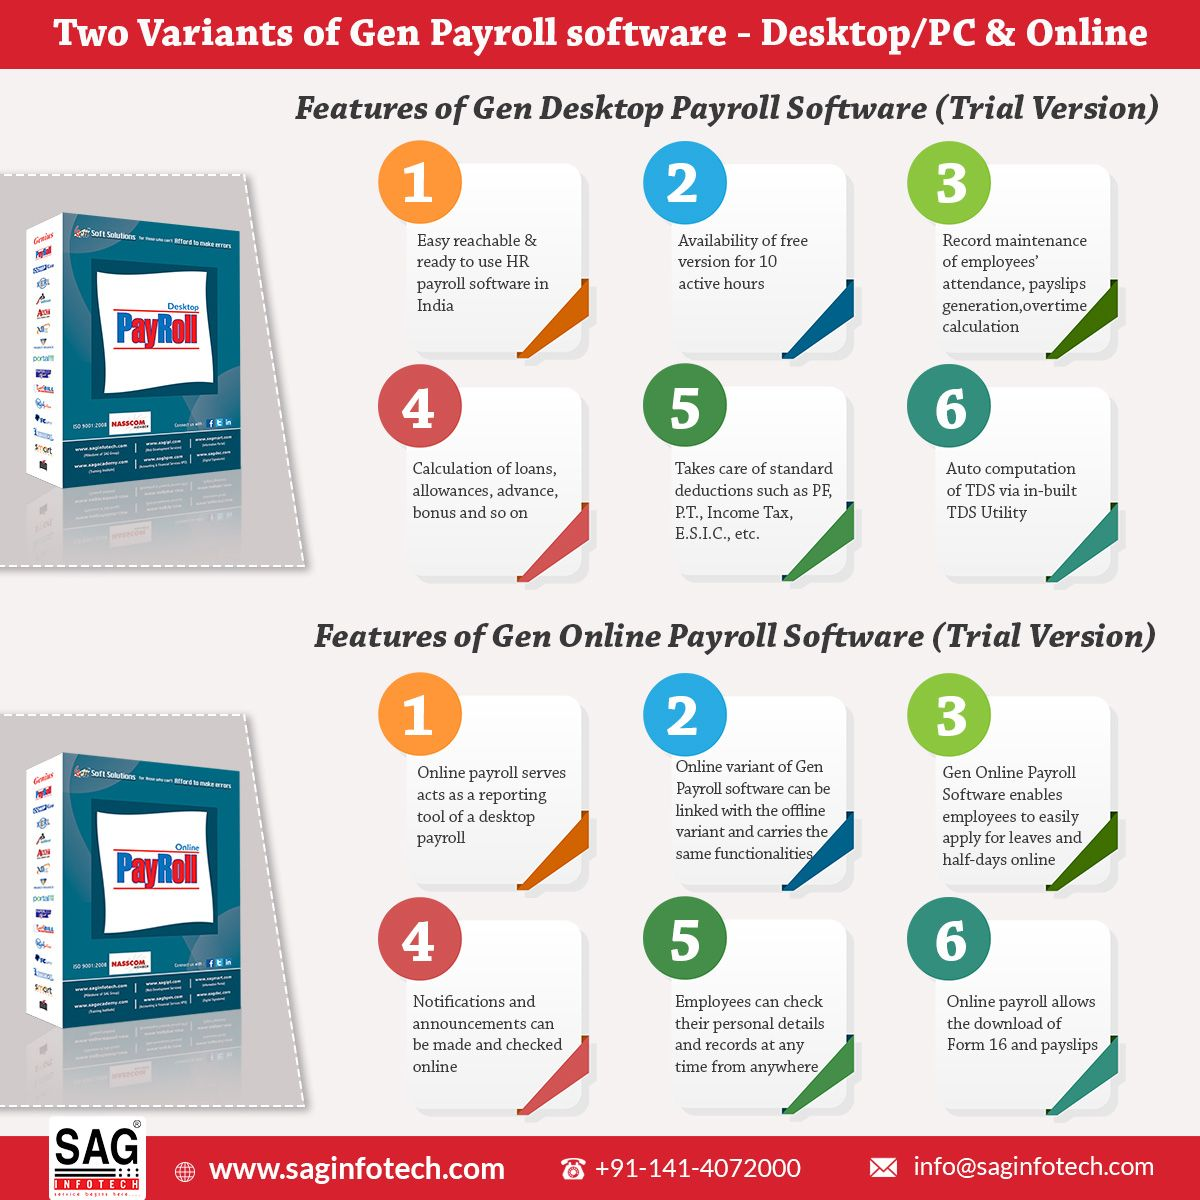 Download Full Trial Version Of Gen Payroll Software For Small Business Sag Infotech Taxation Software Company 2020